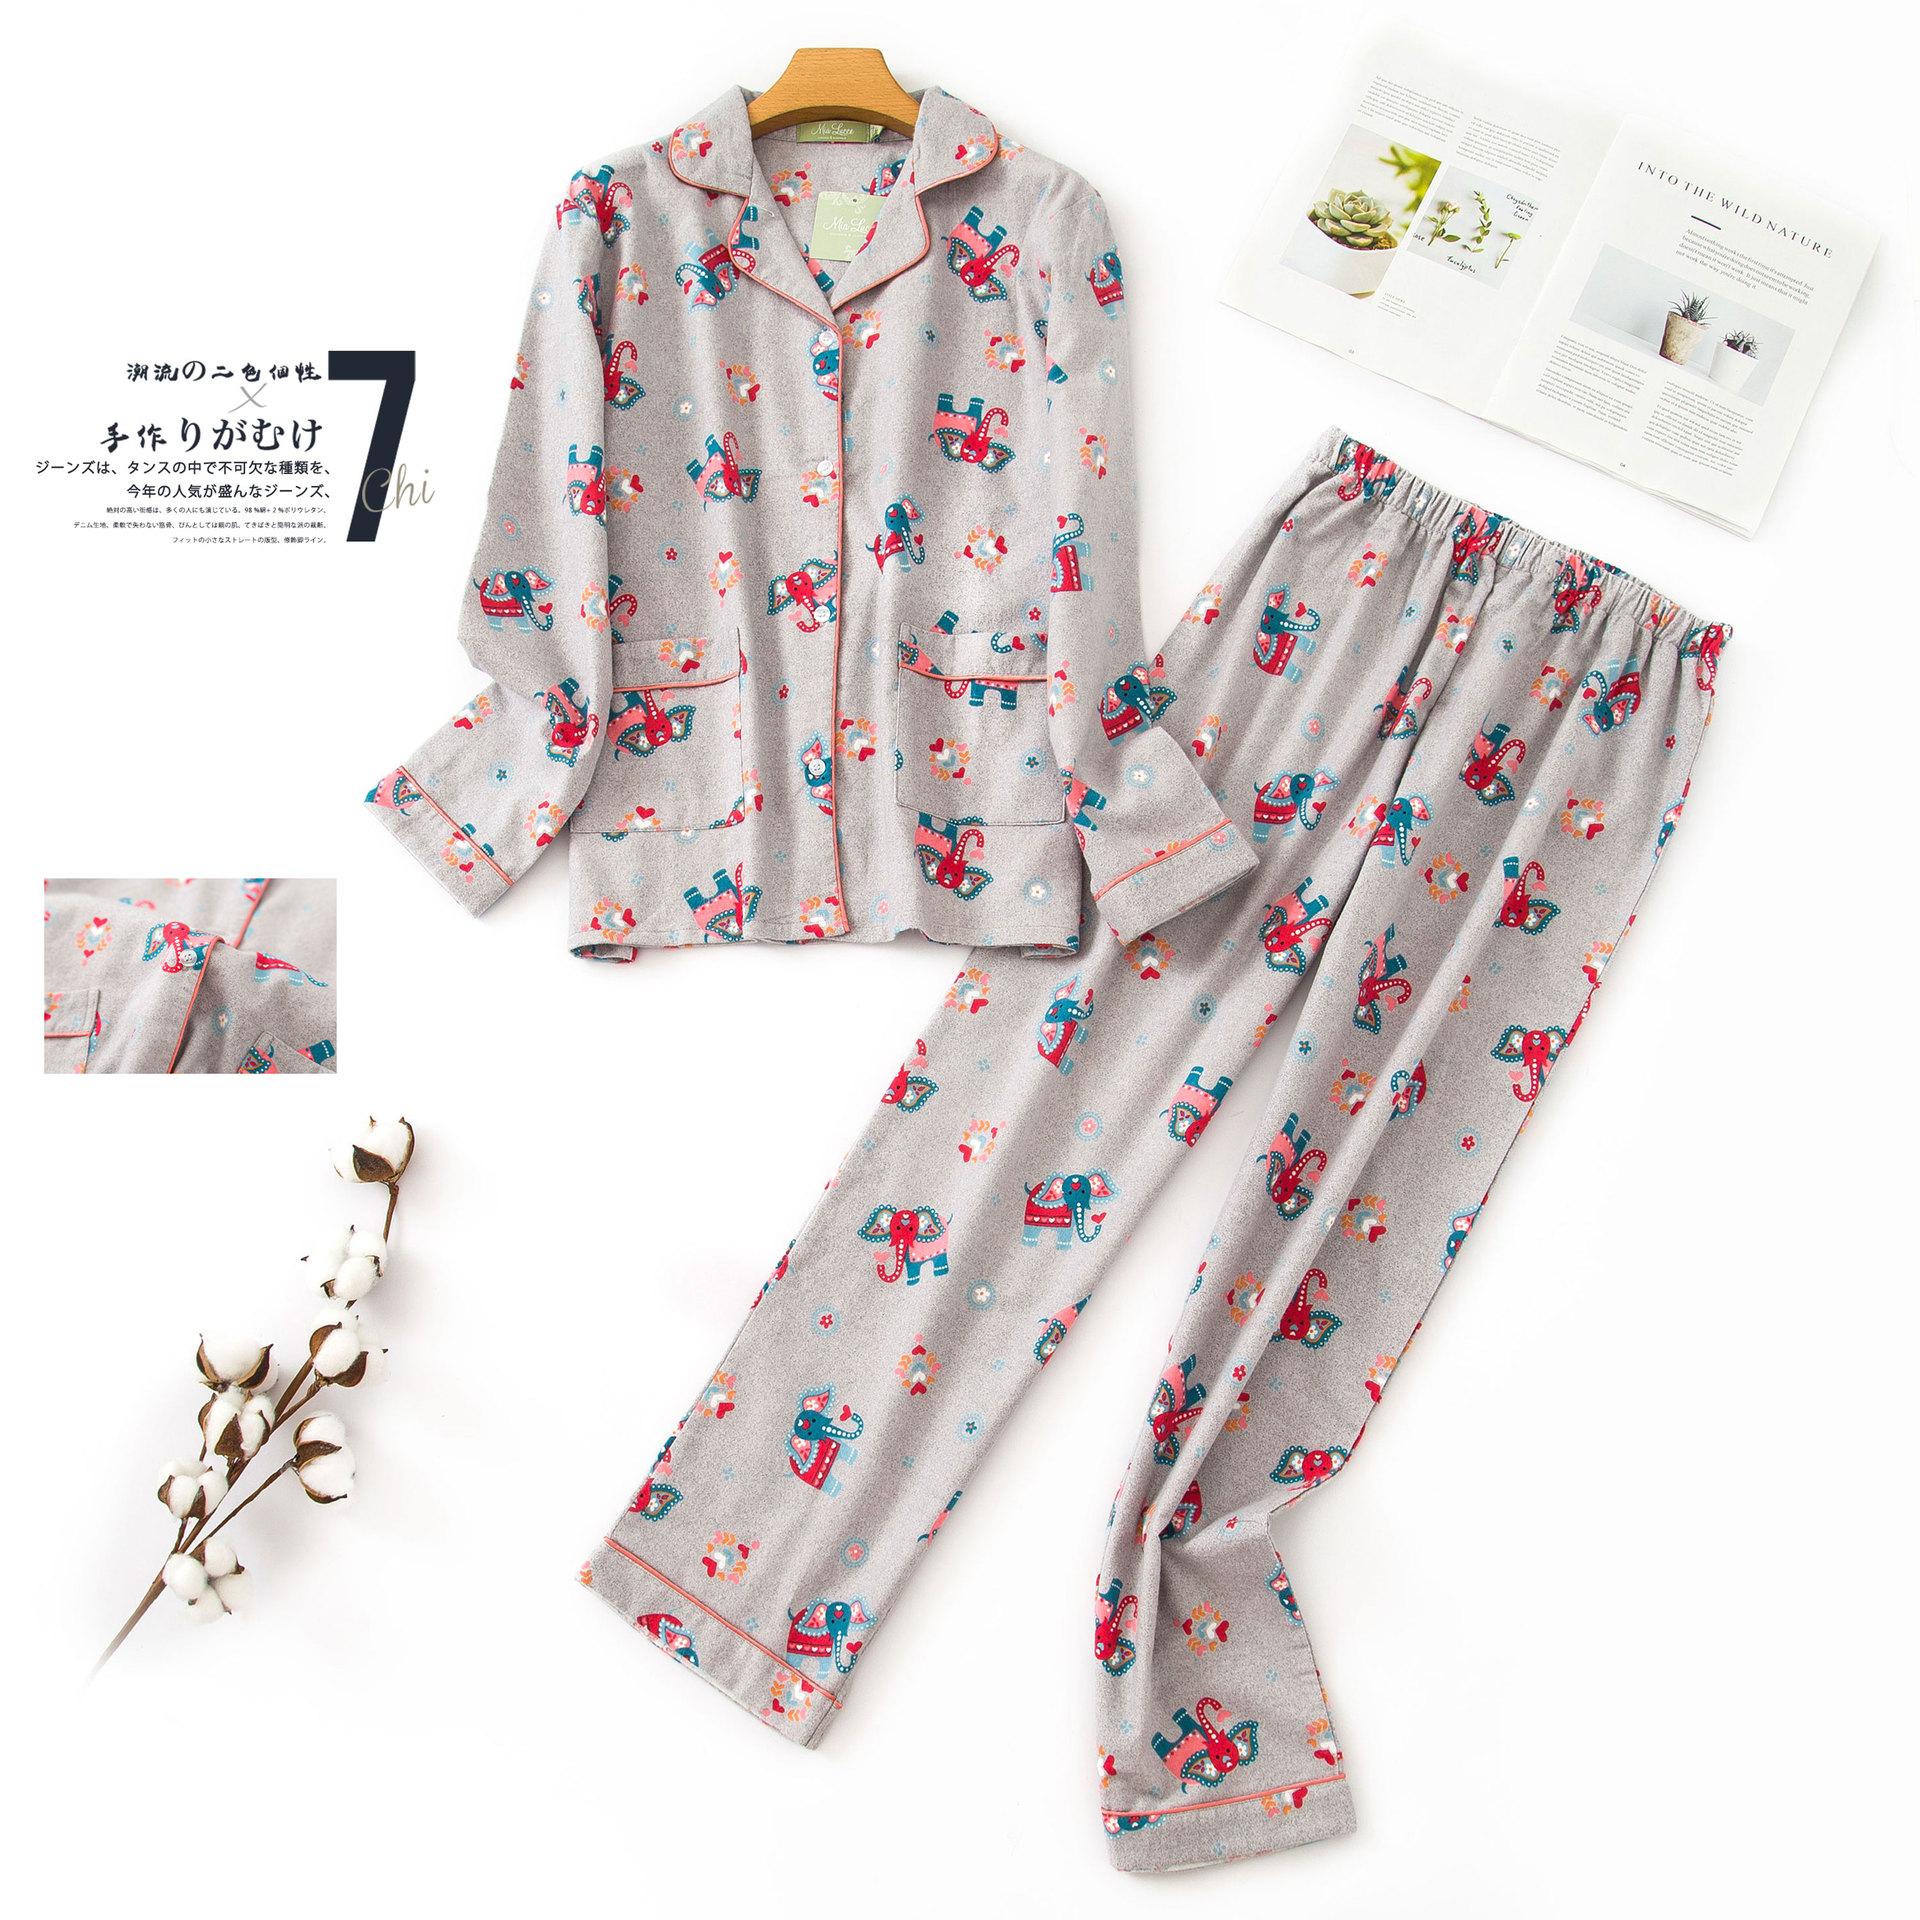 Women's Winter Korean Long Sleeves Pajama Set Lovely Casual Comfortable Cartoon Pijamas Women Plus Size Sleepwear Pijama Mujer